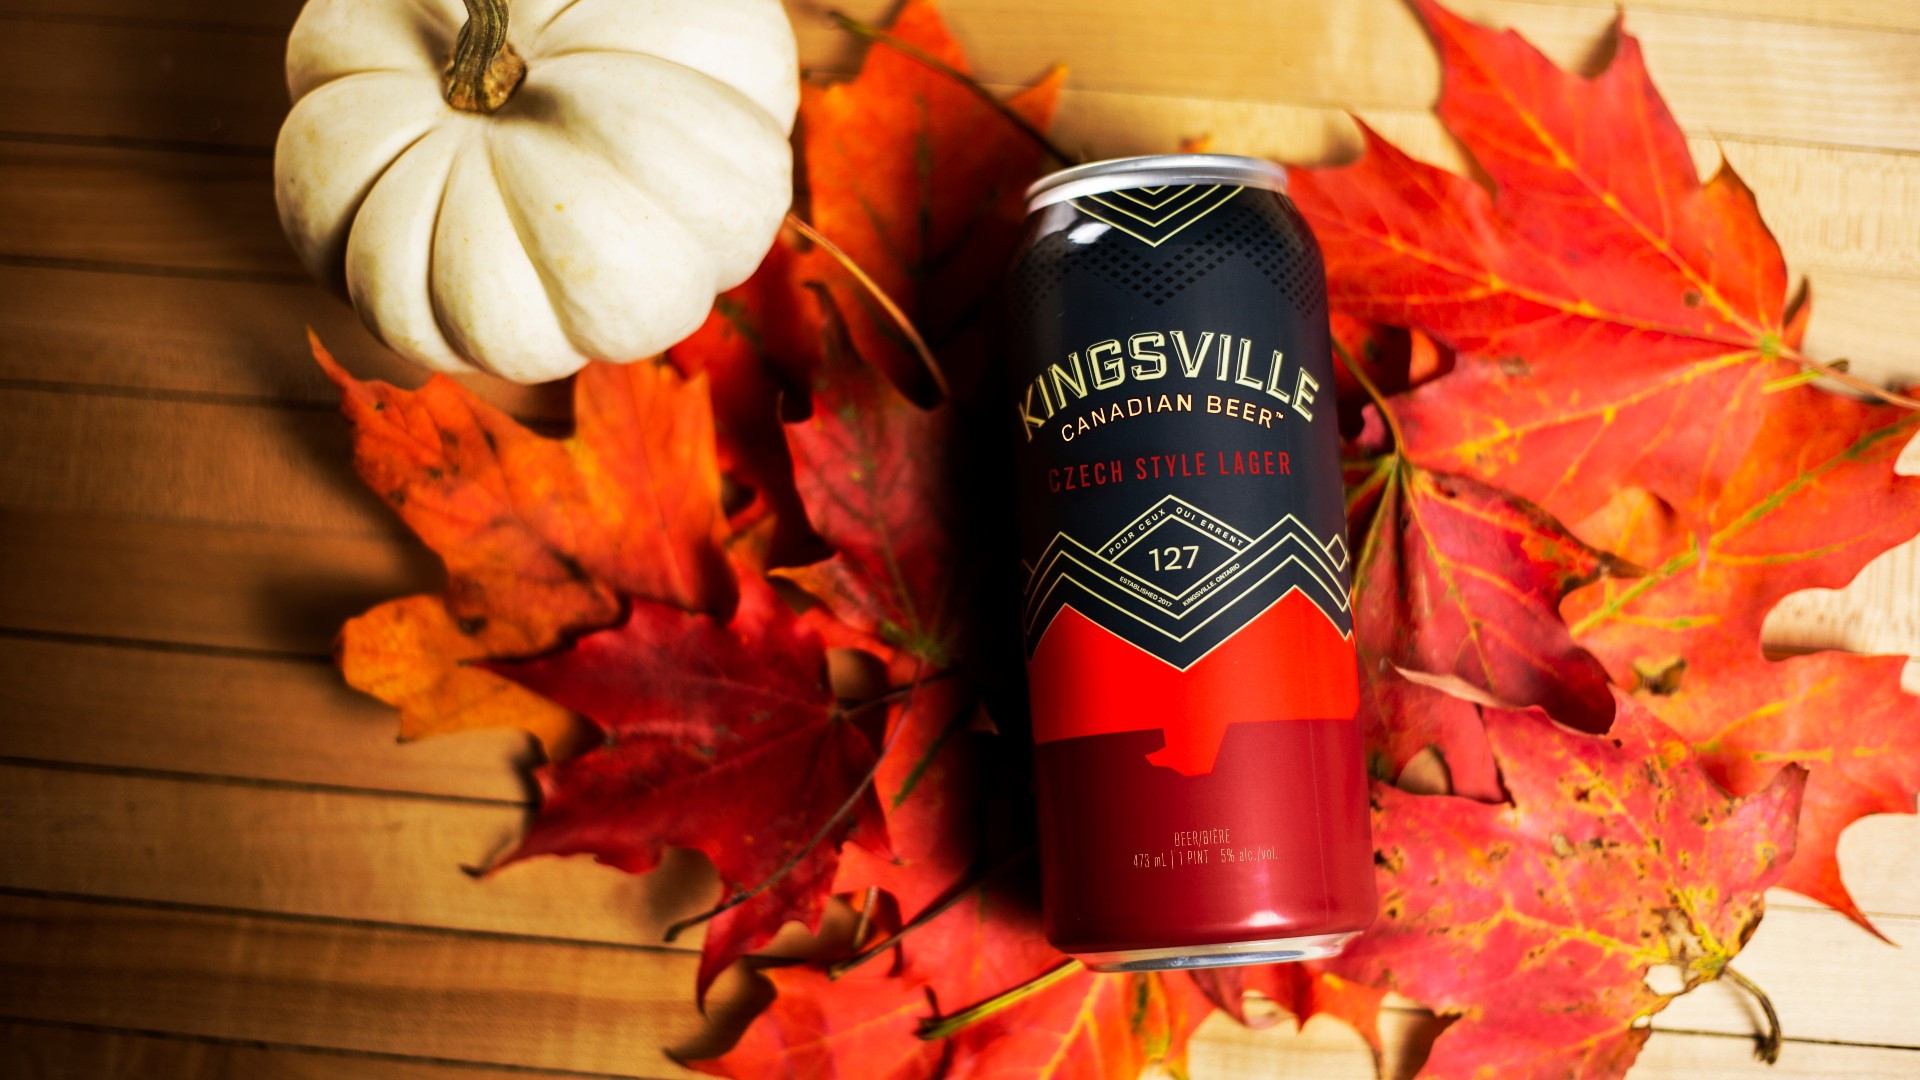 Kingsville Brewery | Czech Style Lager